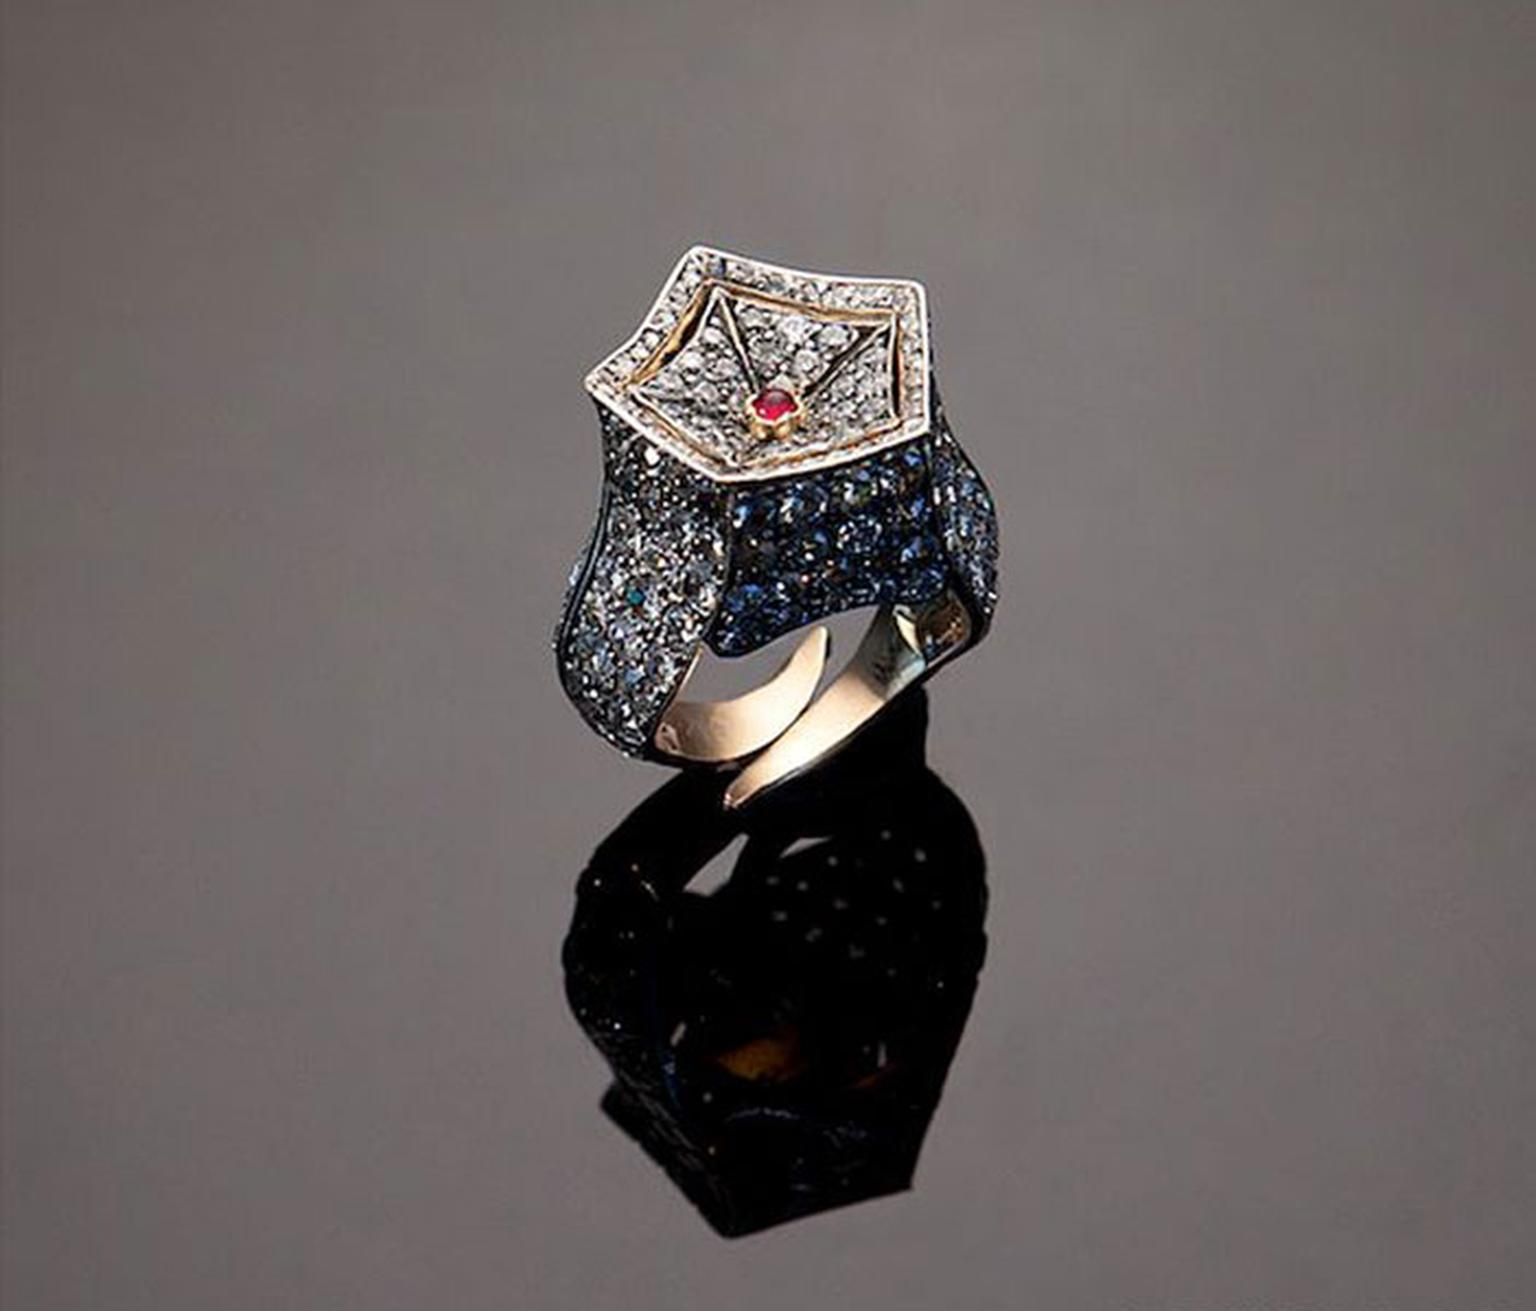 The Star by Eliane Fattal and S.J. Phillips. Once the star is removed in its place a ruby can be mounted in the concave pavé set diamond bezel.